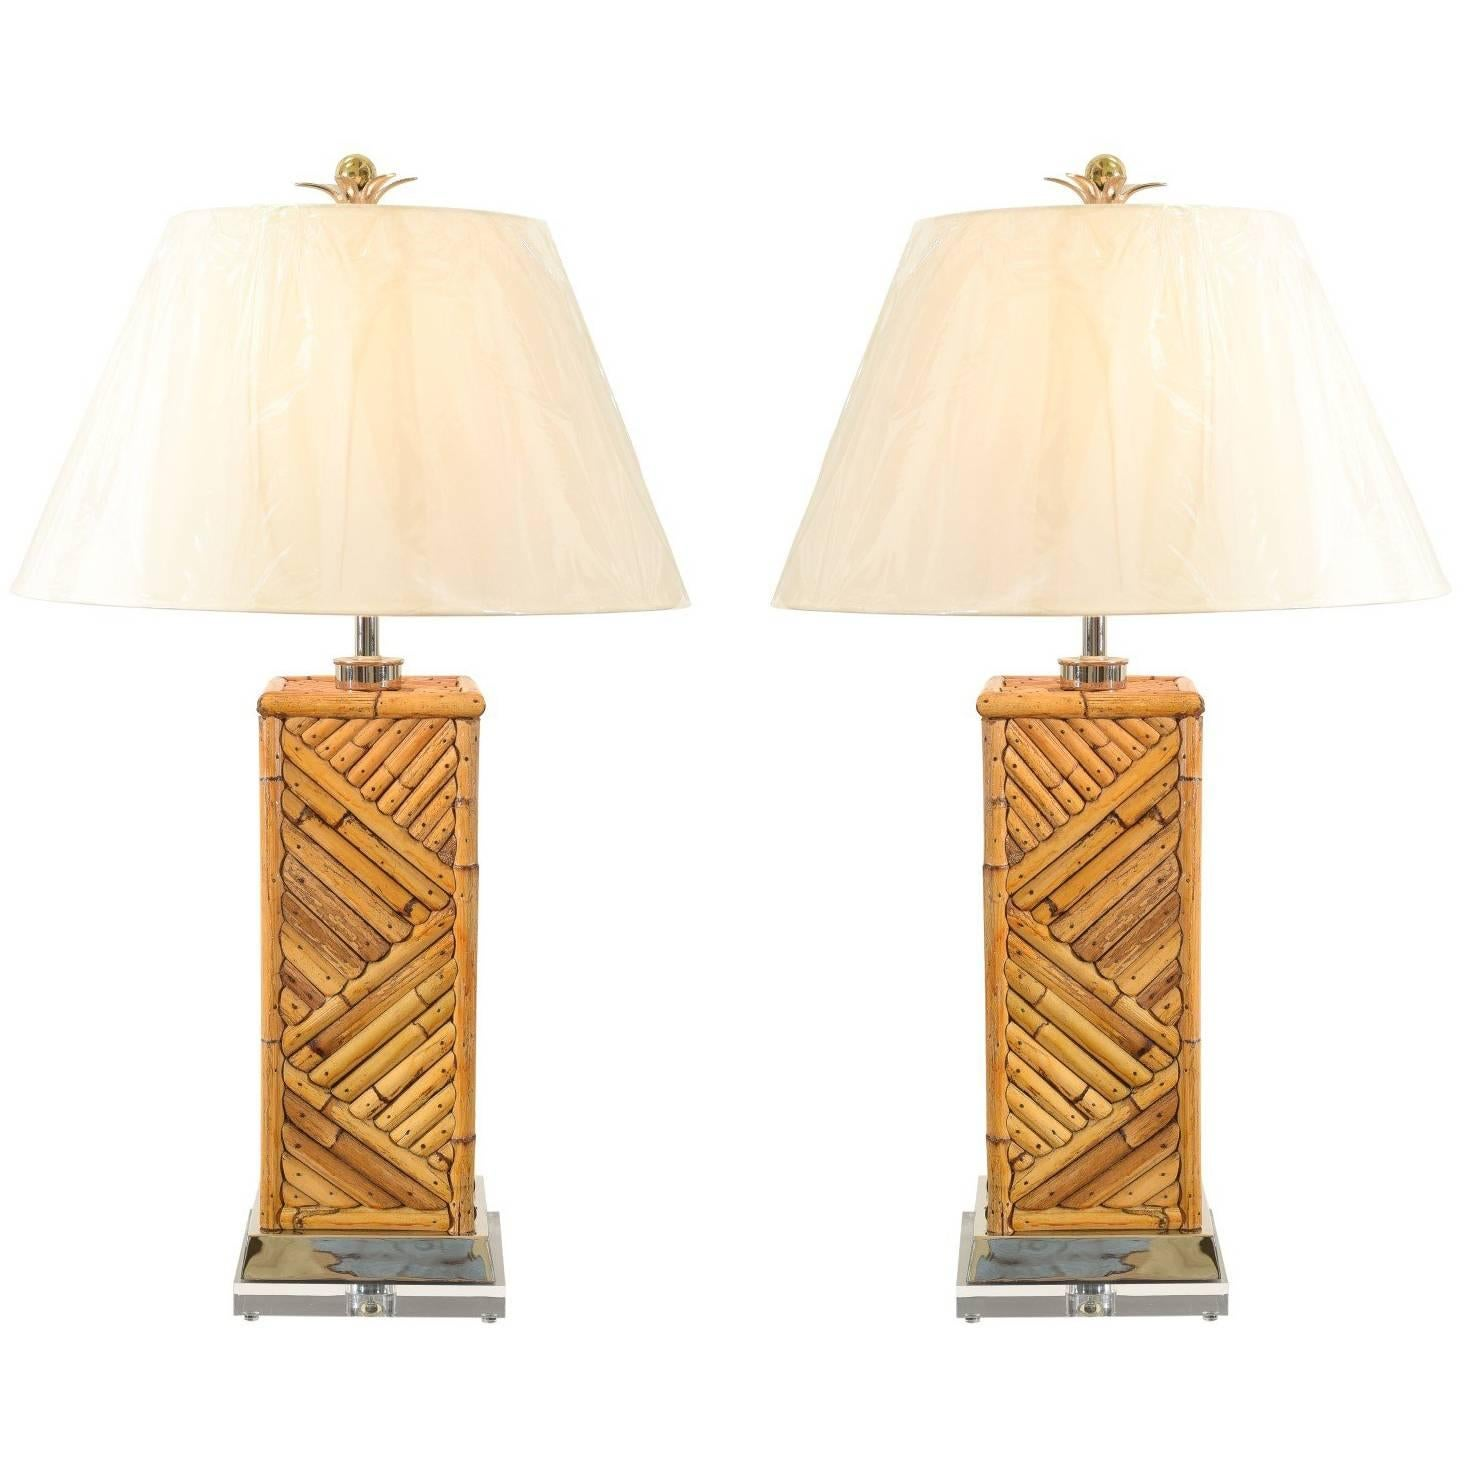 Dramatic Pair of Handmade Vintage Bamboo Lamps with Nickel and Lucite Accents